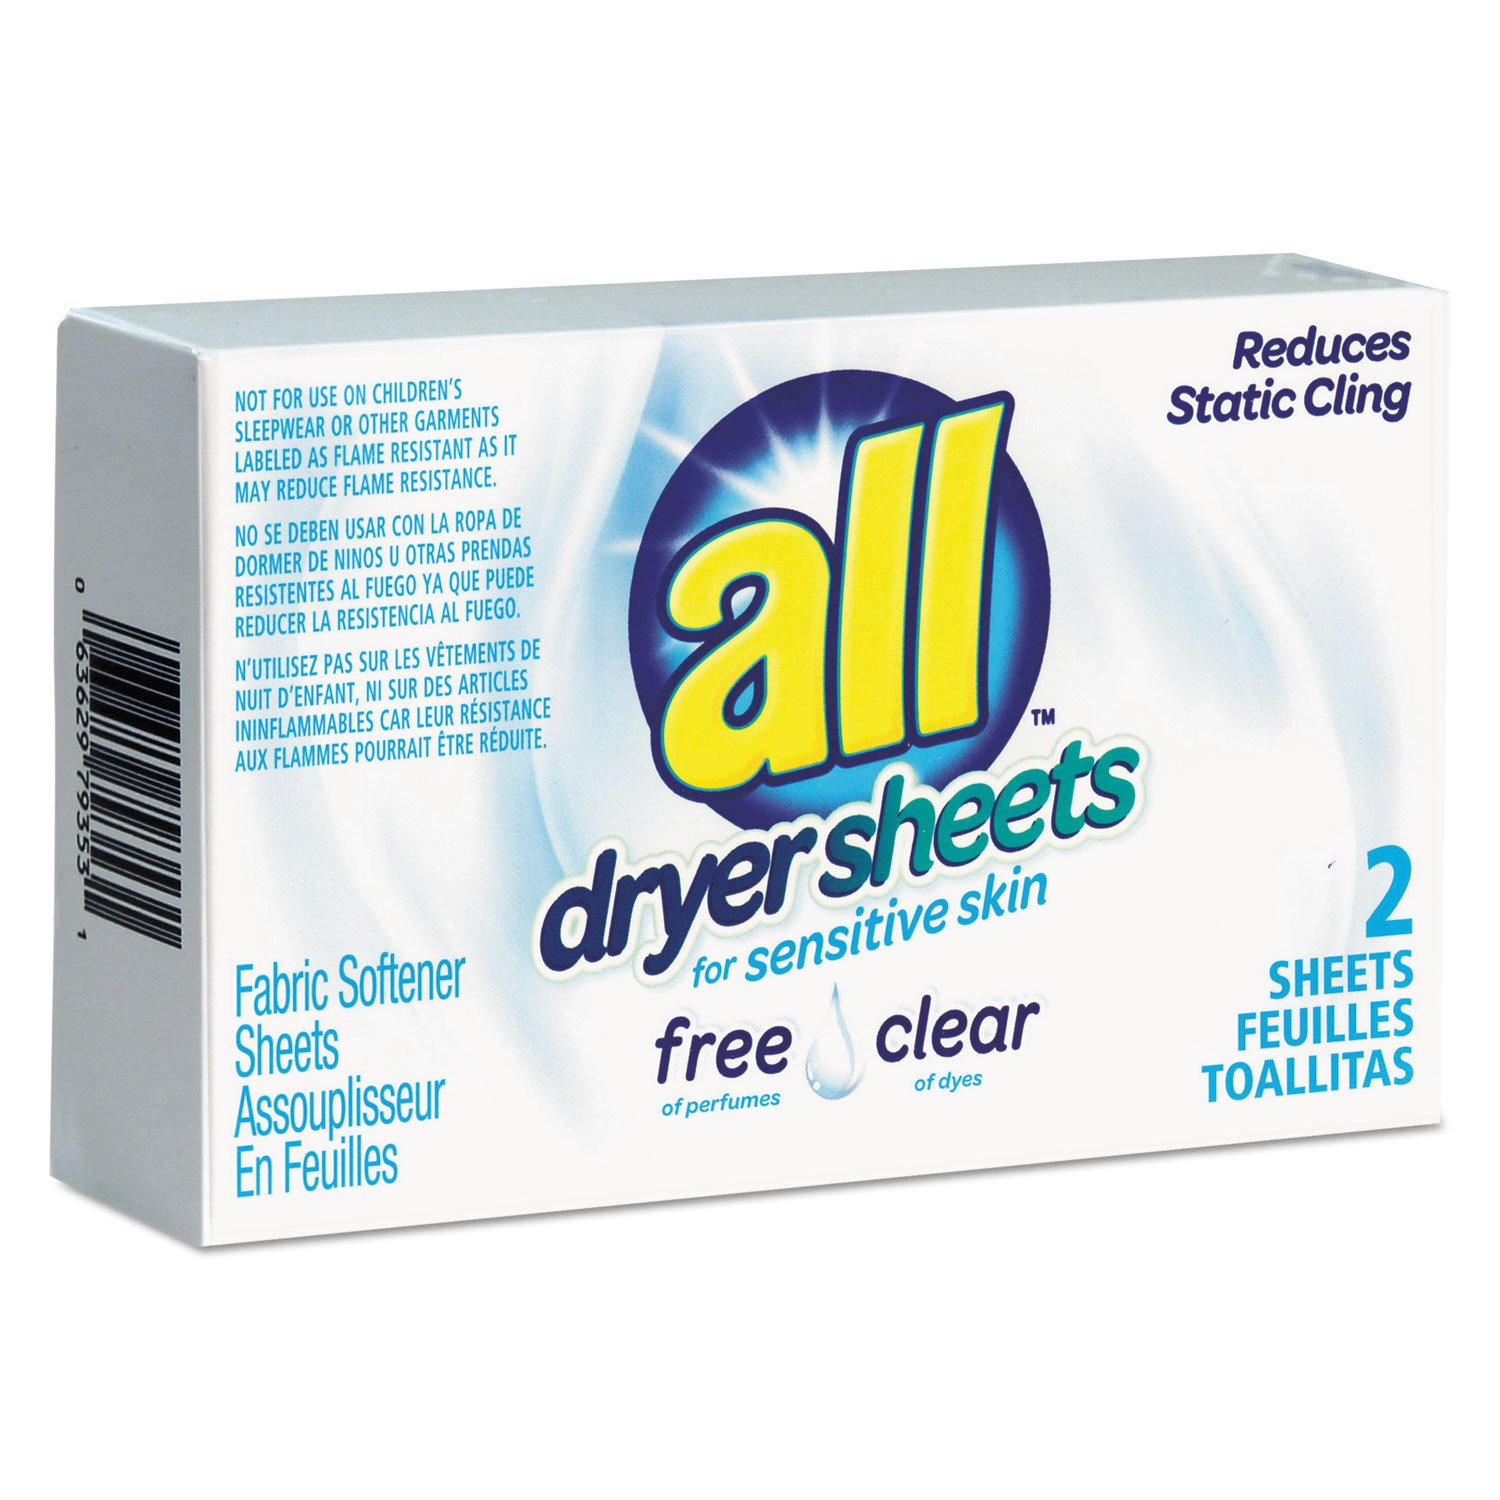 Free Clear Vend Pack Dryer Sheets, Fragrance Free, 2 Sheets/box, 100 Box/carton by Johnson Diversey